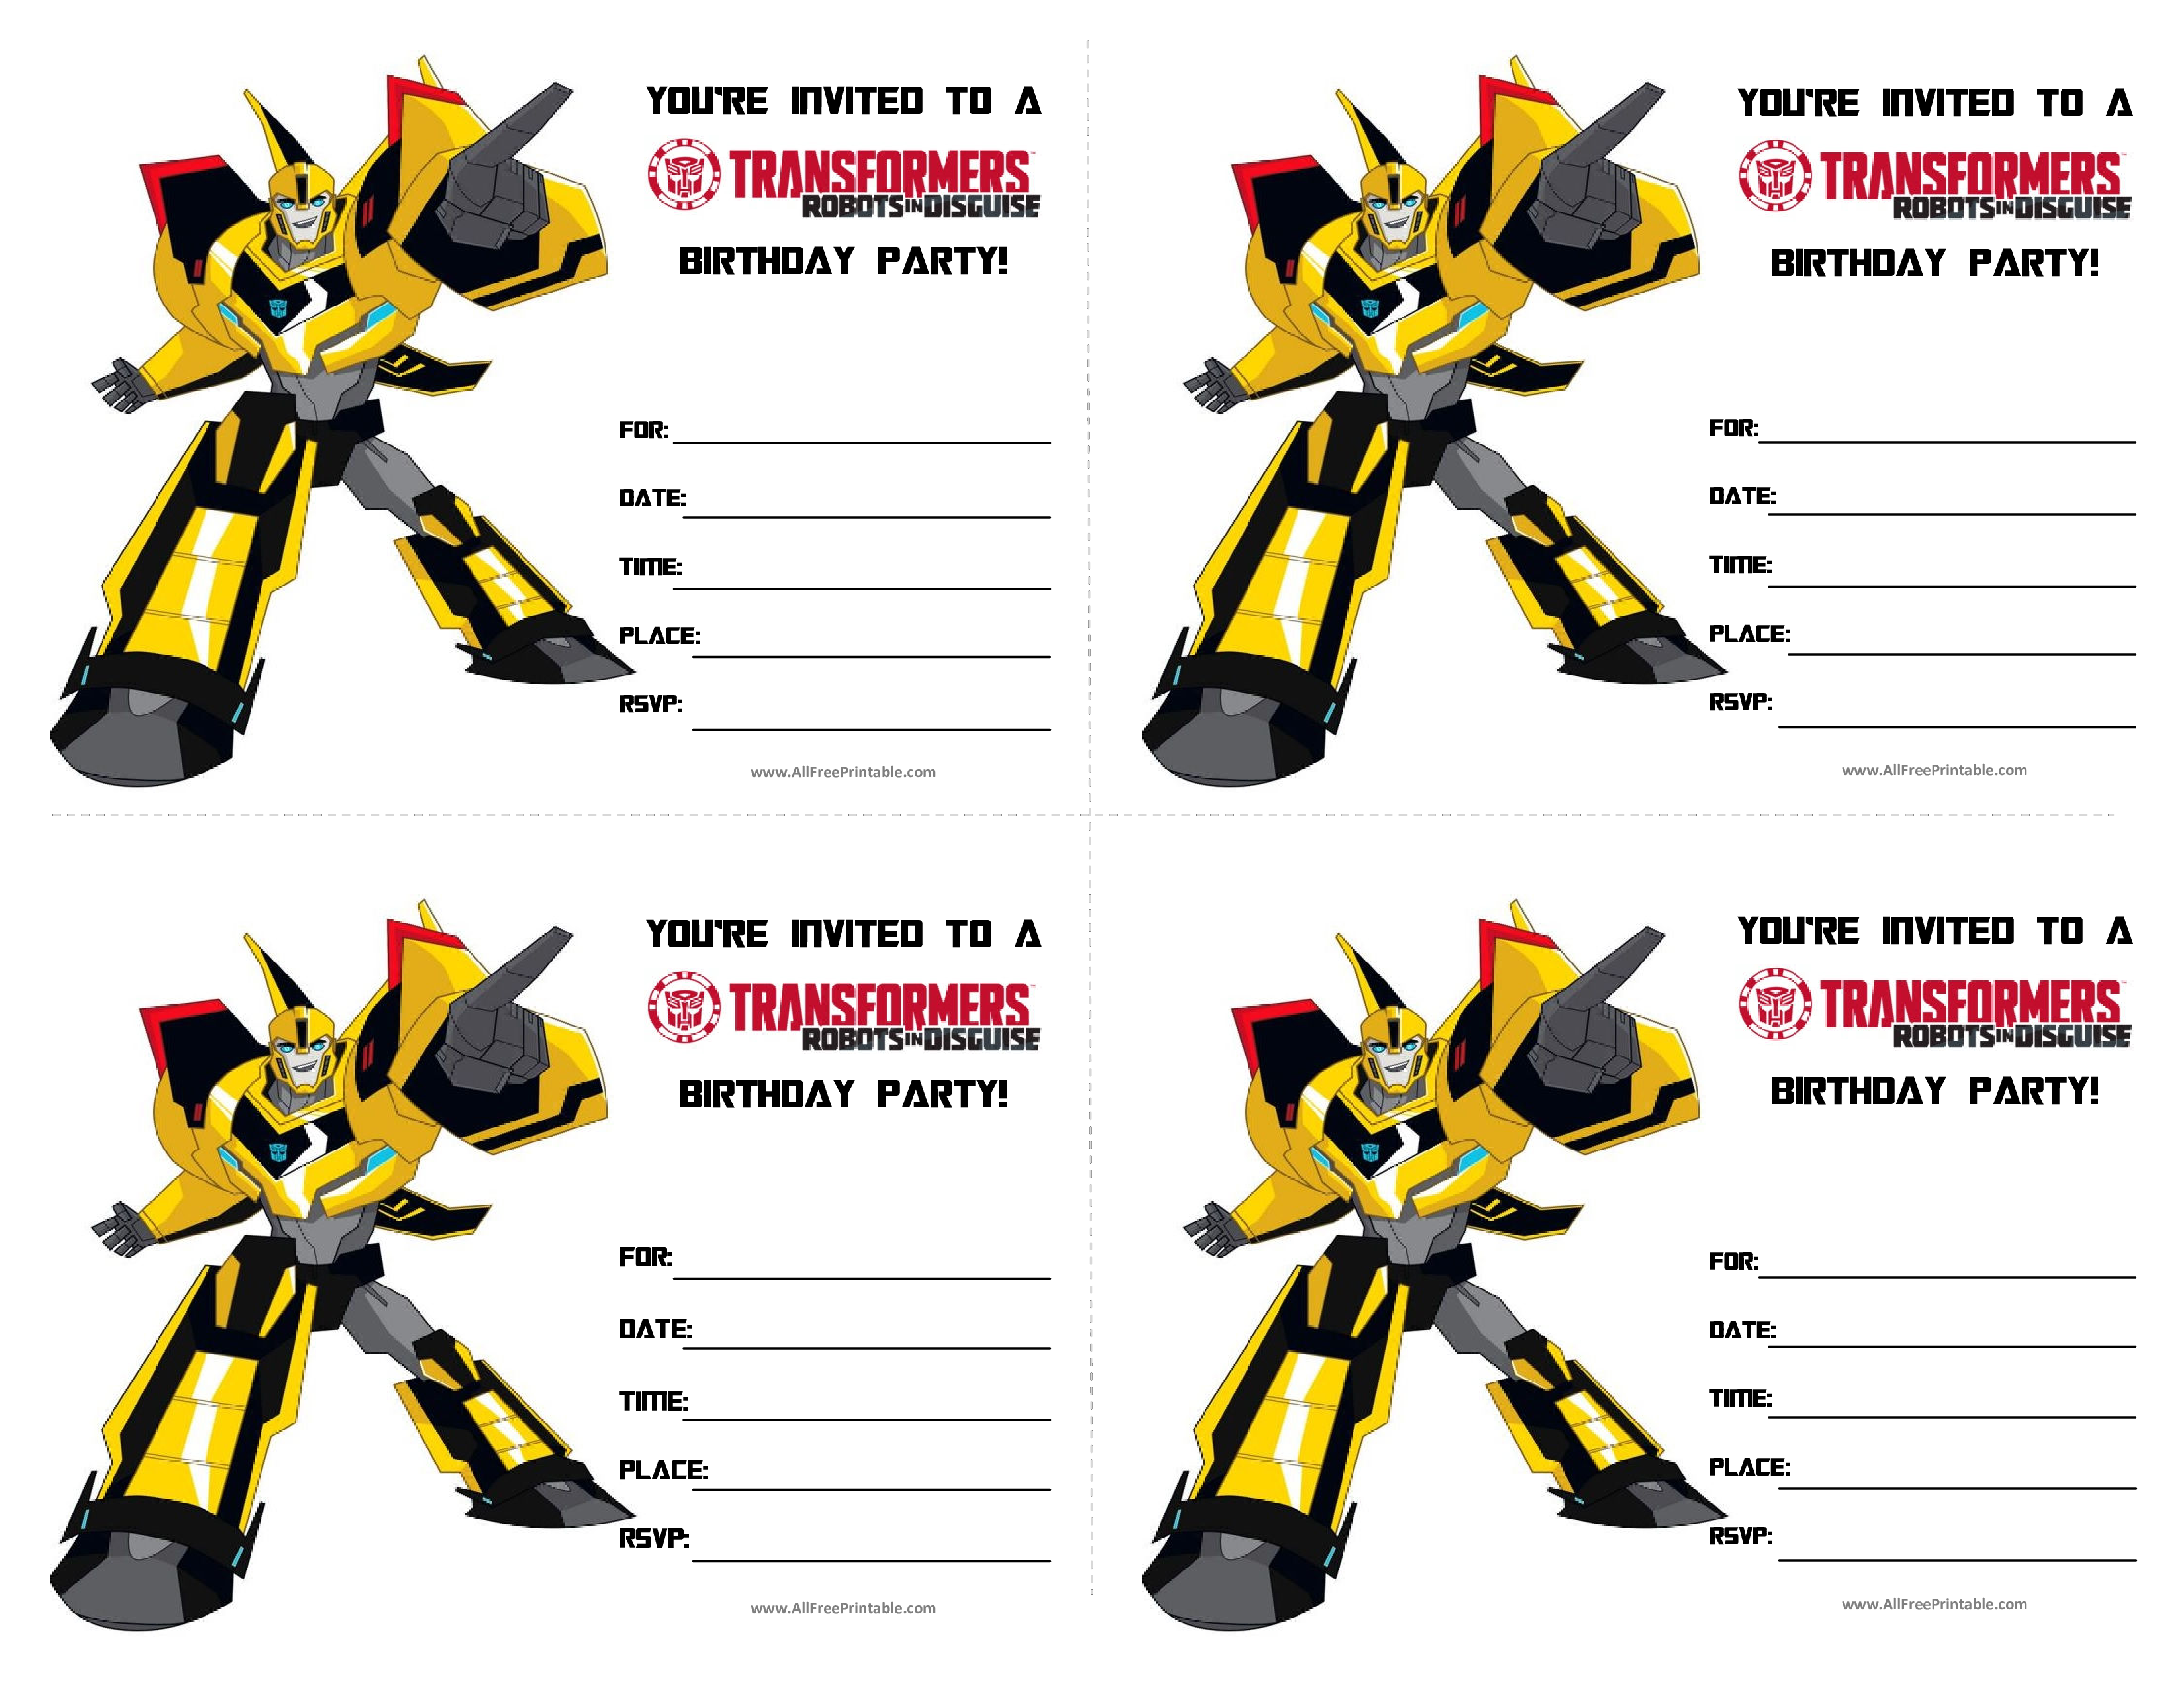 Free Transformers Birthday Invitations | Templates at ...